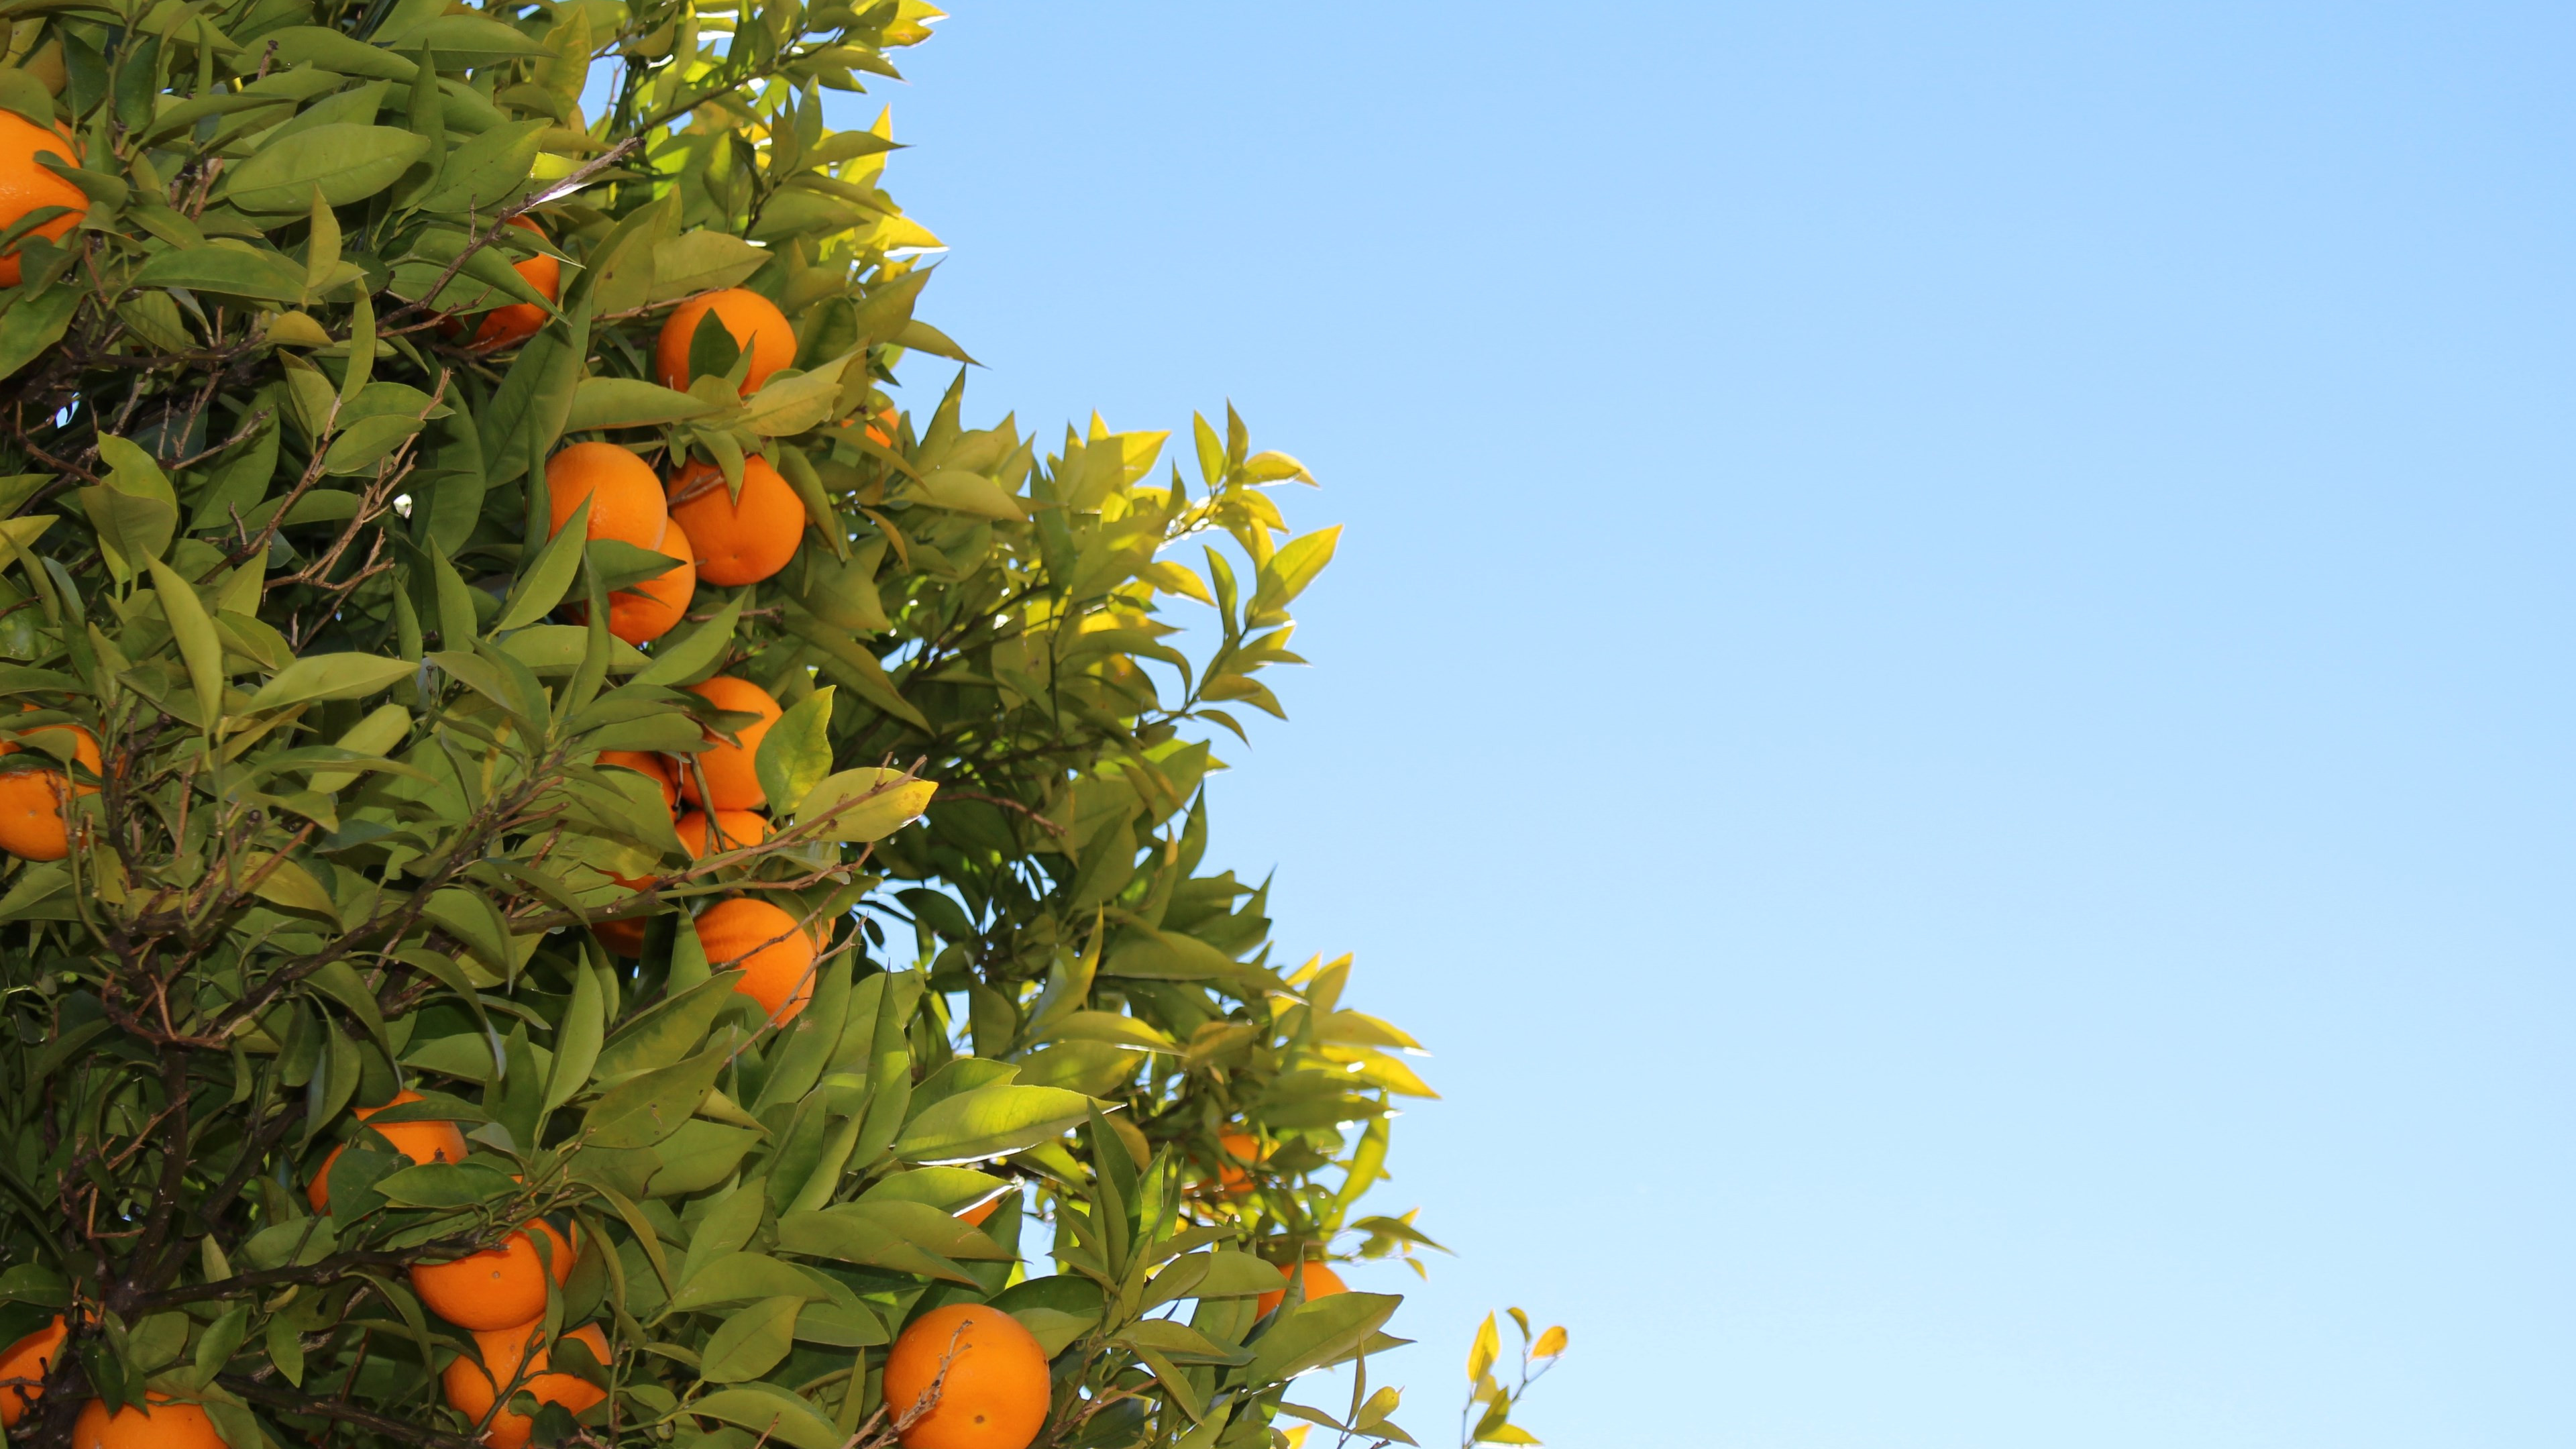 Oranges or clementines in tree wallpaper 3840x2160